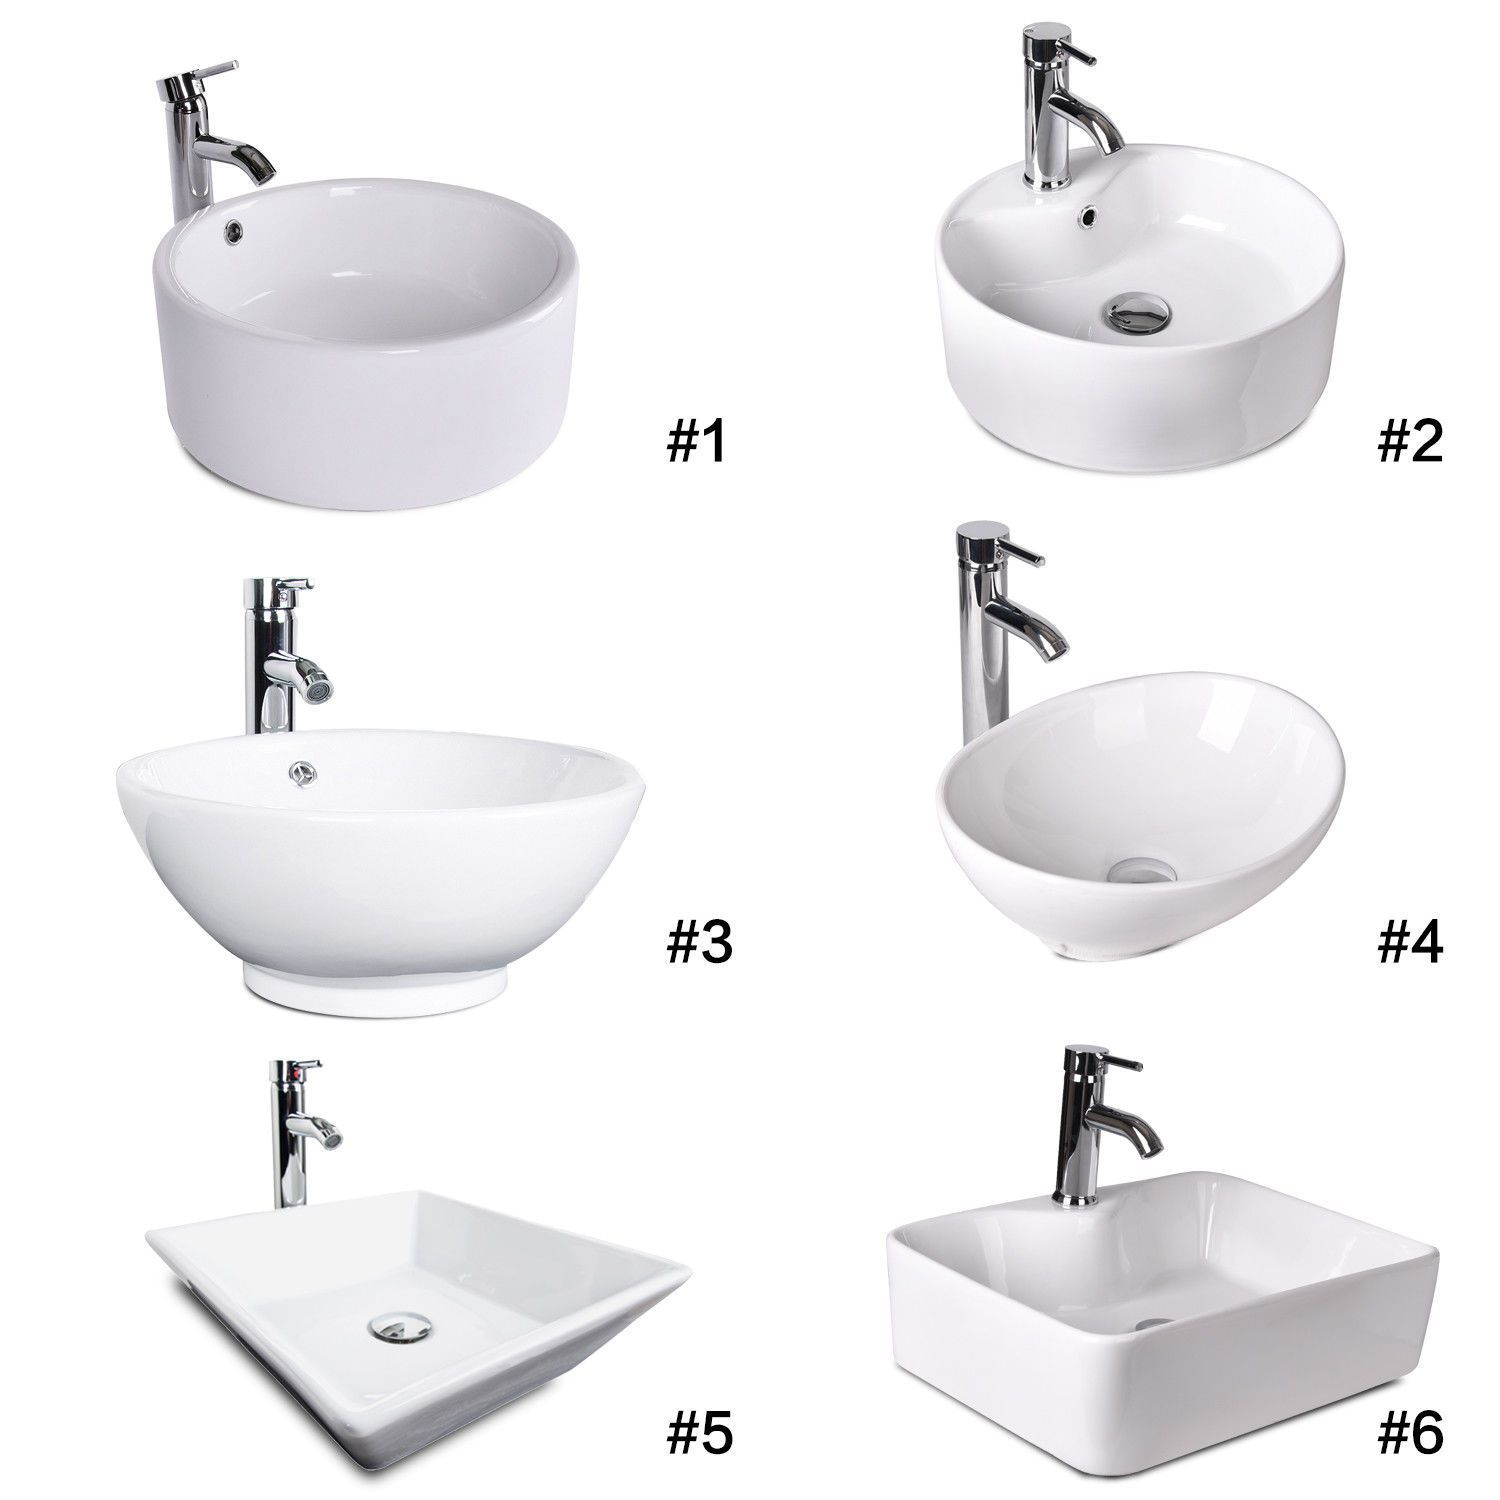 Bathroom Vessel Sink Ceramic Basin Bowl Chrome Faucet Pop Up Drain Set Washroom Bathroom Sinks Ideas Of Bath Bathroom Sink Bowls Vessel Sink Bathroom Sink